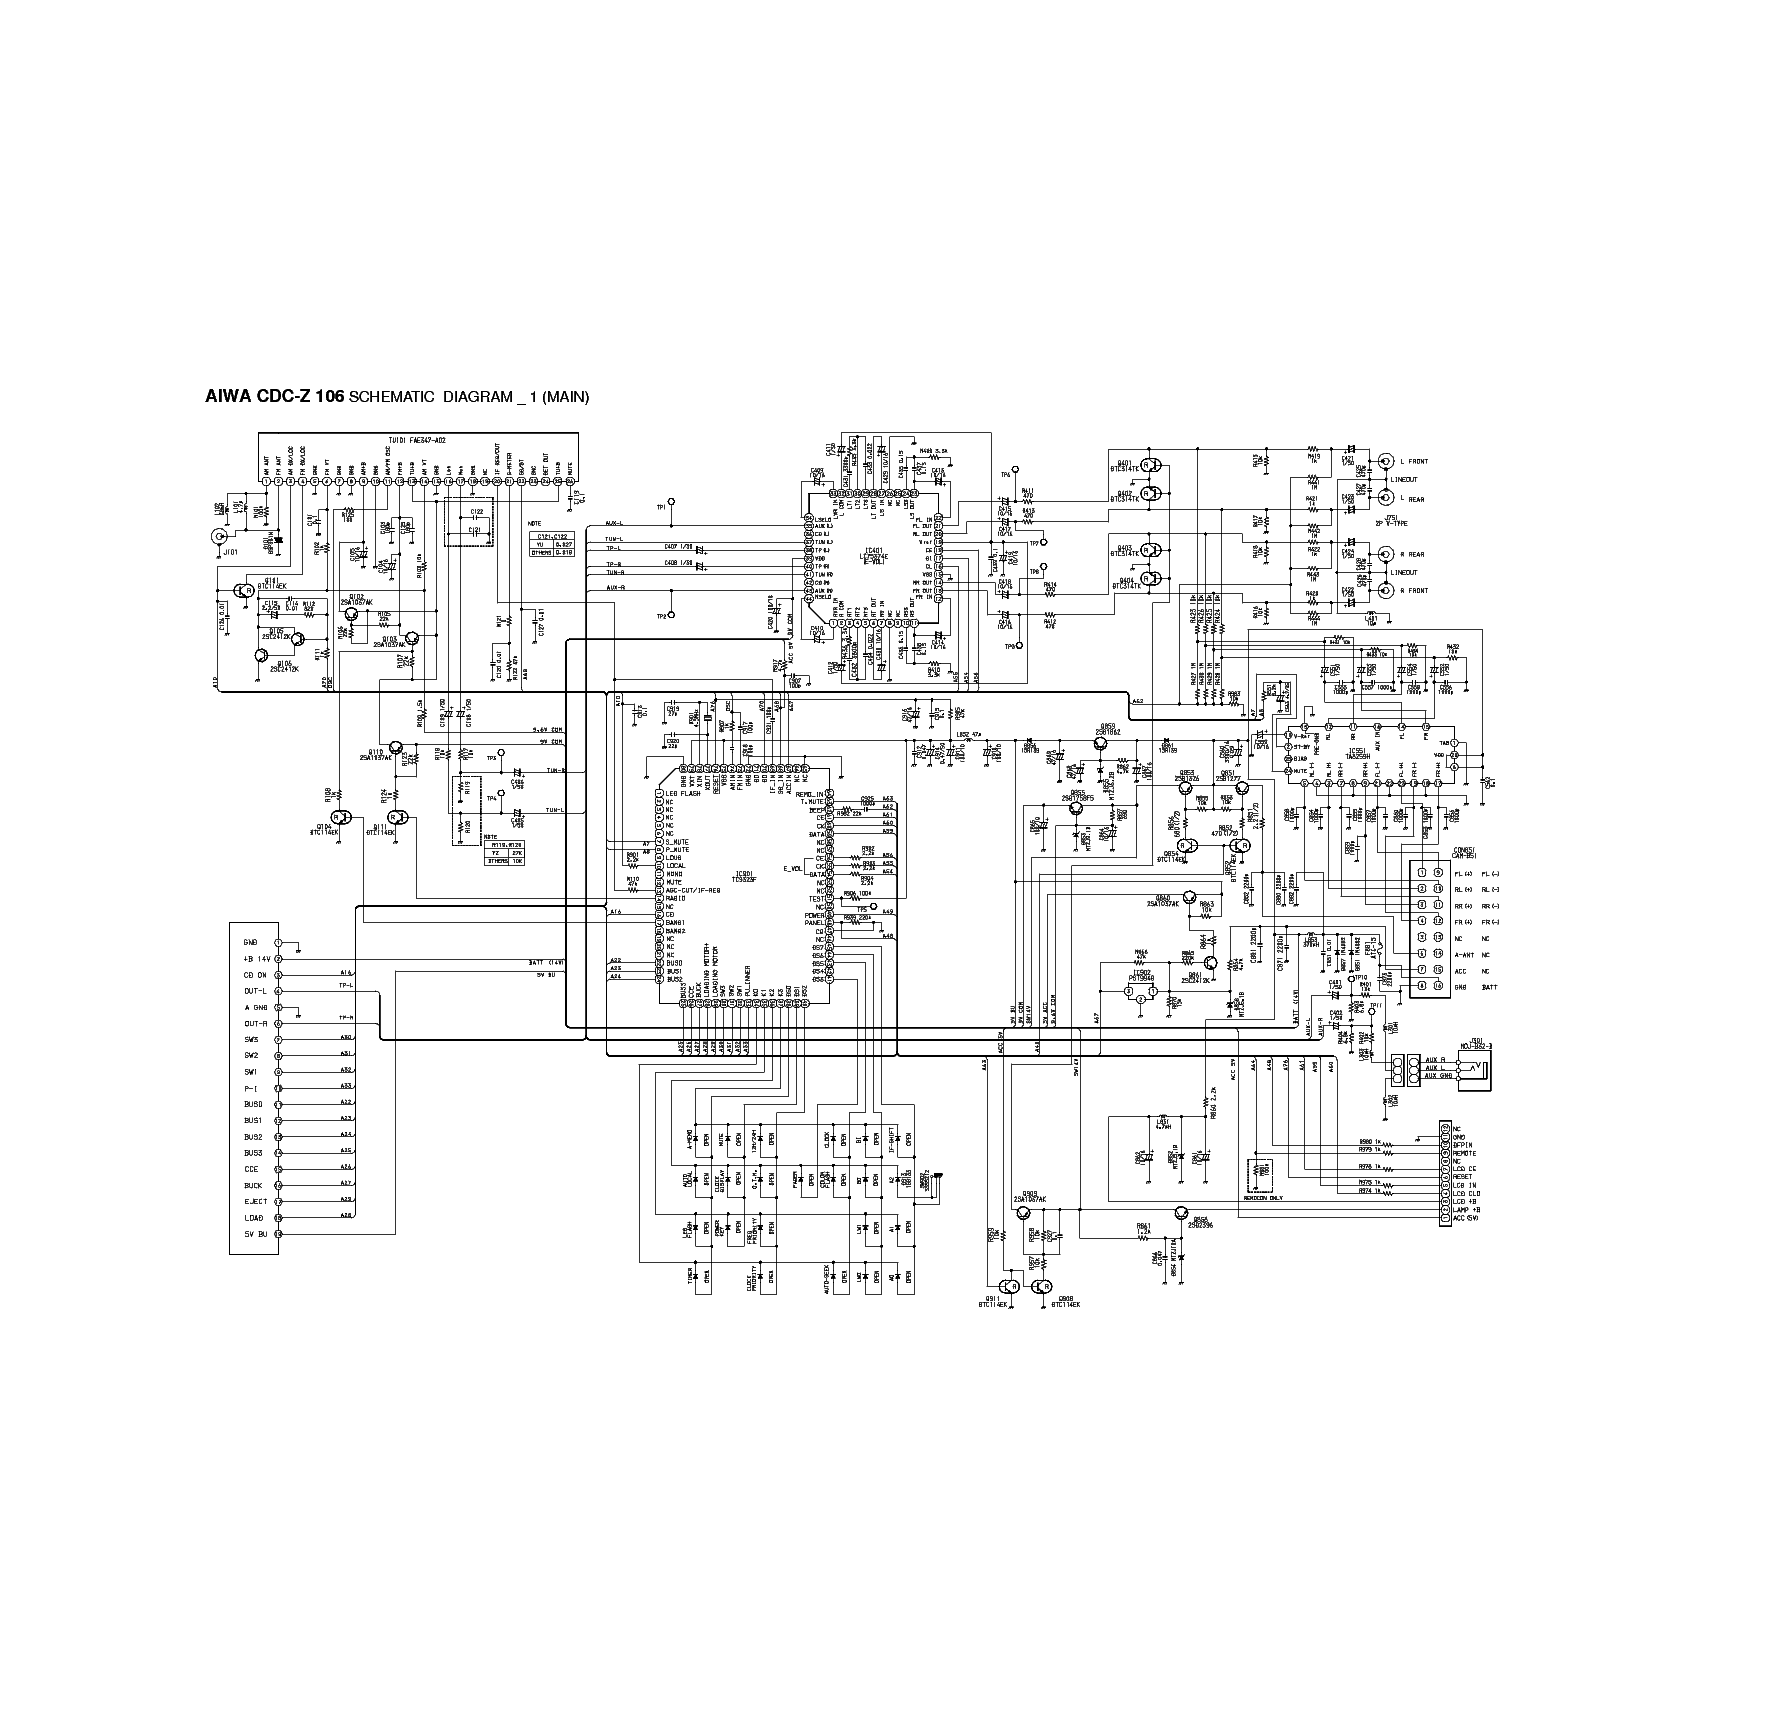 aiwa cdc wiring diagram